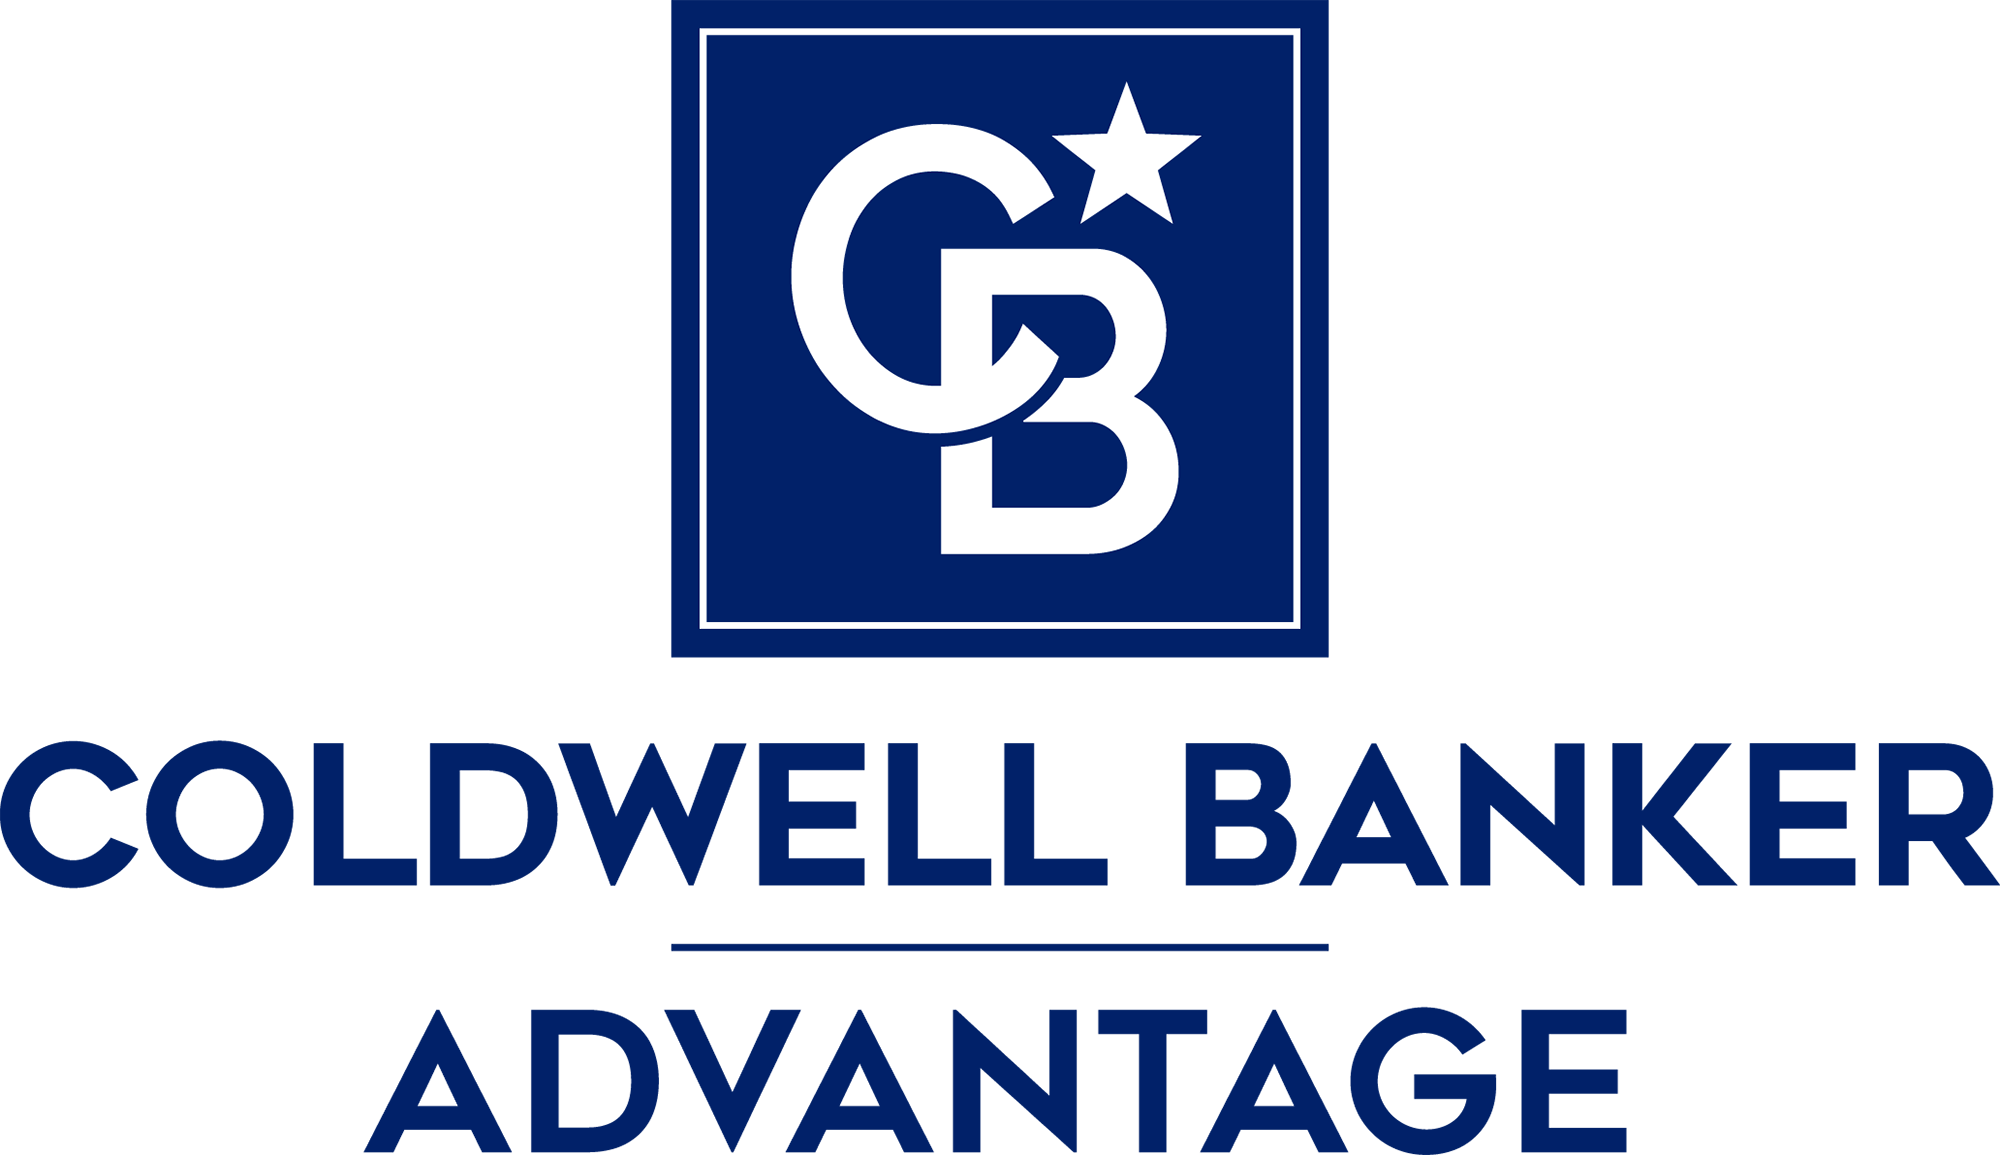 Chip Stallings - Coldwell Banker Advantage Logo